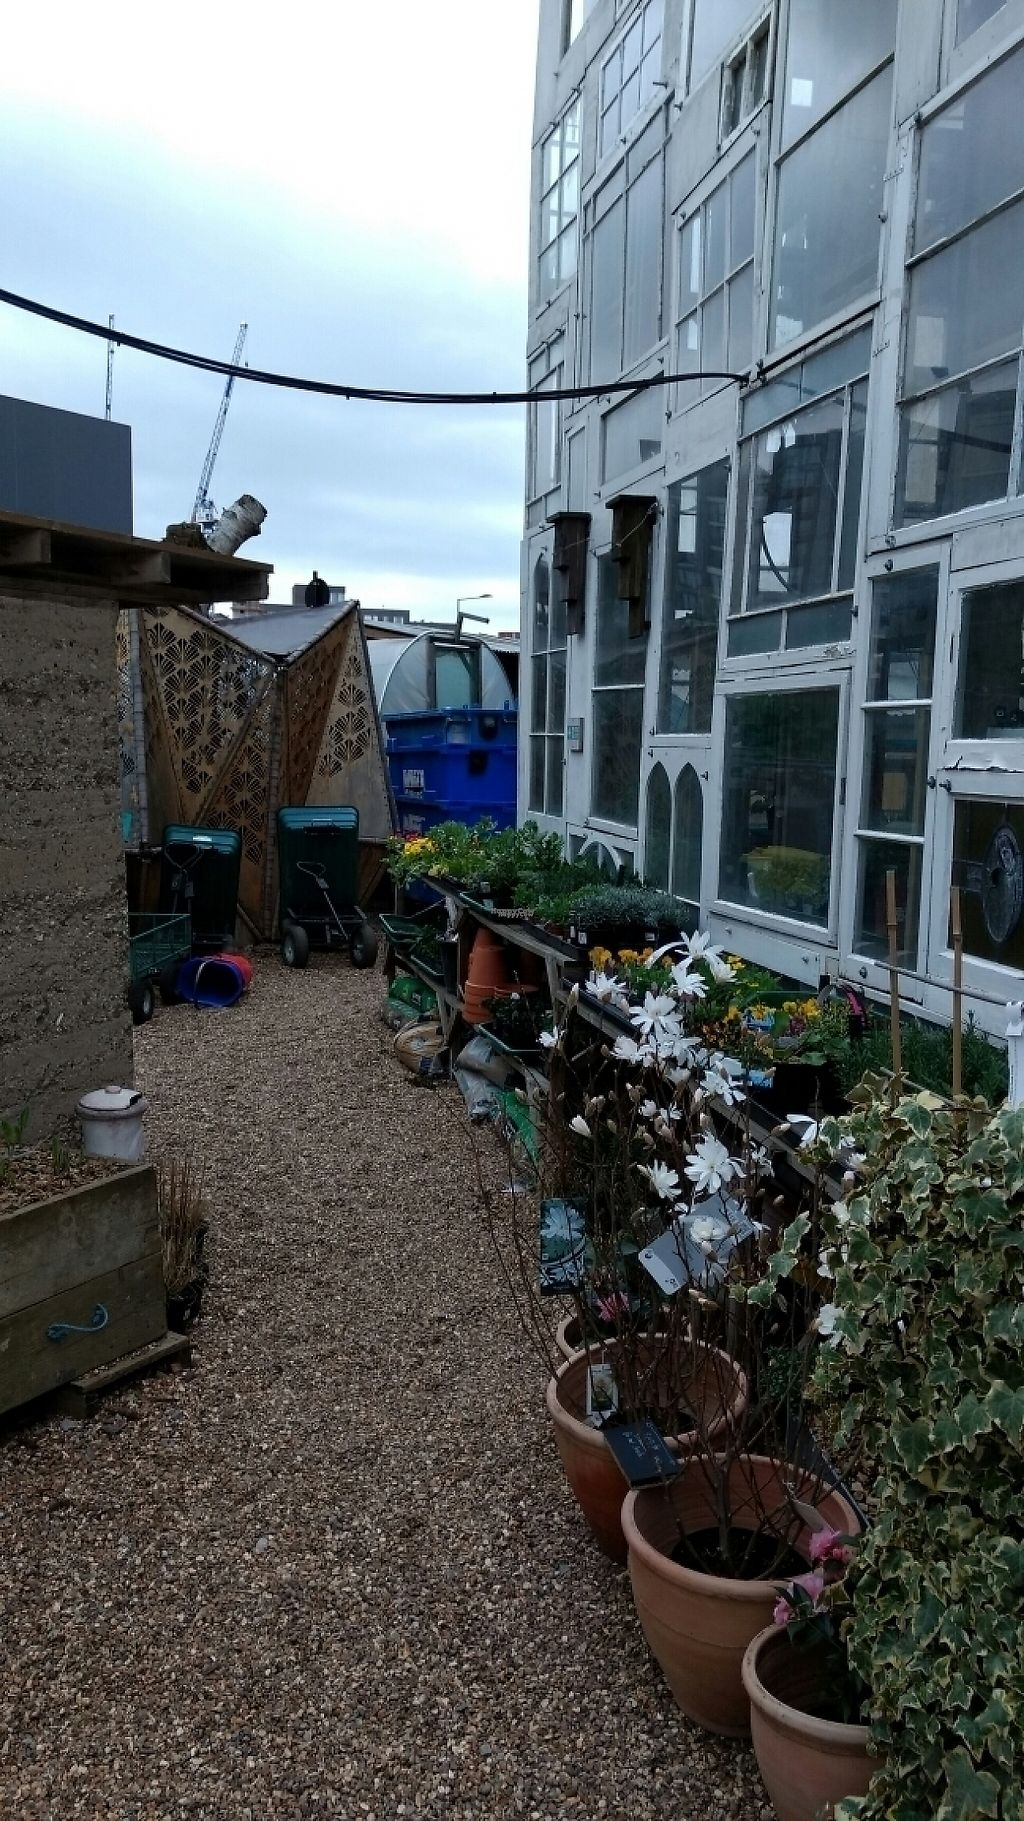 """Photo of Skip Garden Kitchen  by <a href=""""/members/profile/craigmc"""">craigmc</a> <br/>grow <br/> March 18, 2017  - <a href='/contact/abuse/image/61559/237924'>Report</a>"""